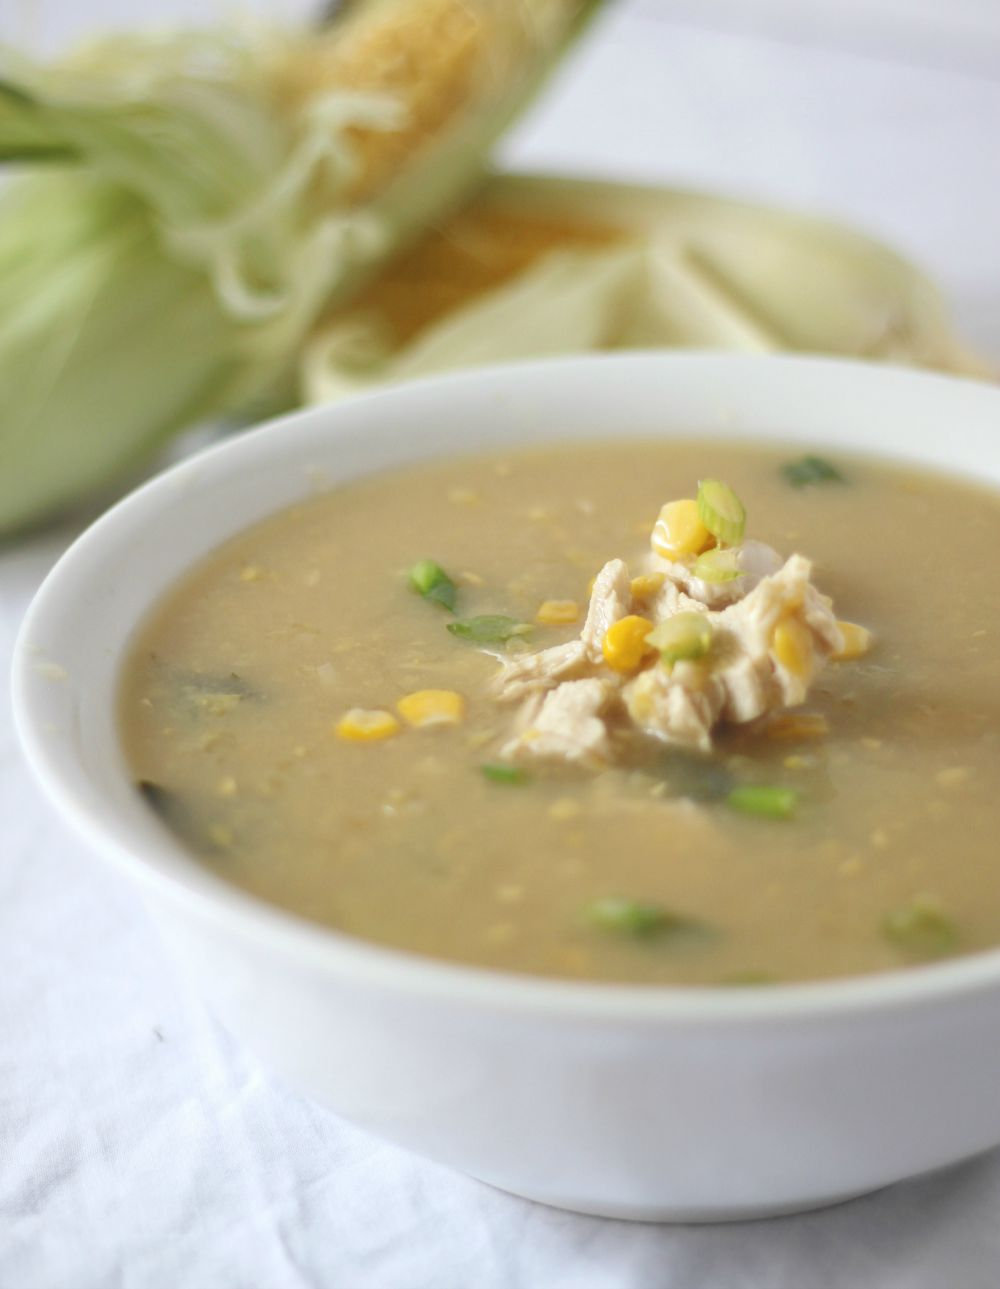 Chicken & Sweetcorn Soup jwill be on your table quicker than you can order a serve from your local takeaway.